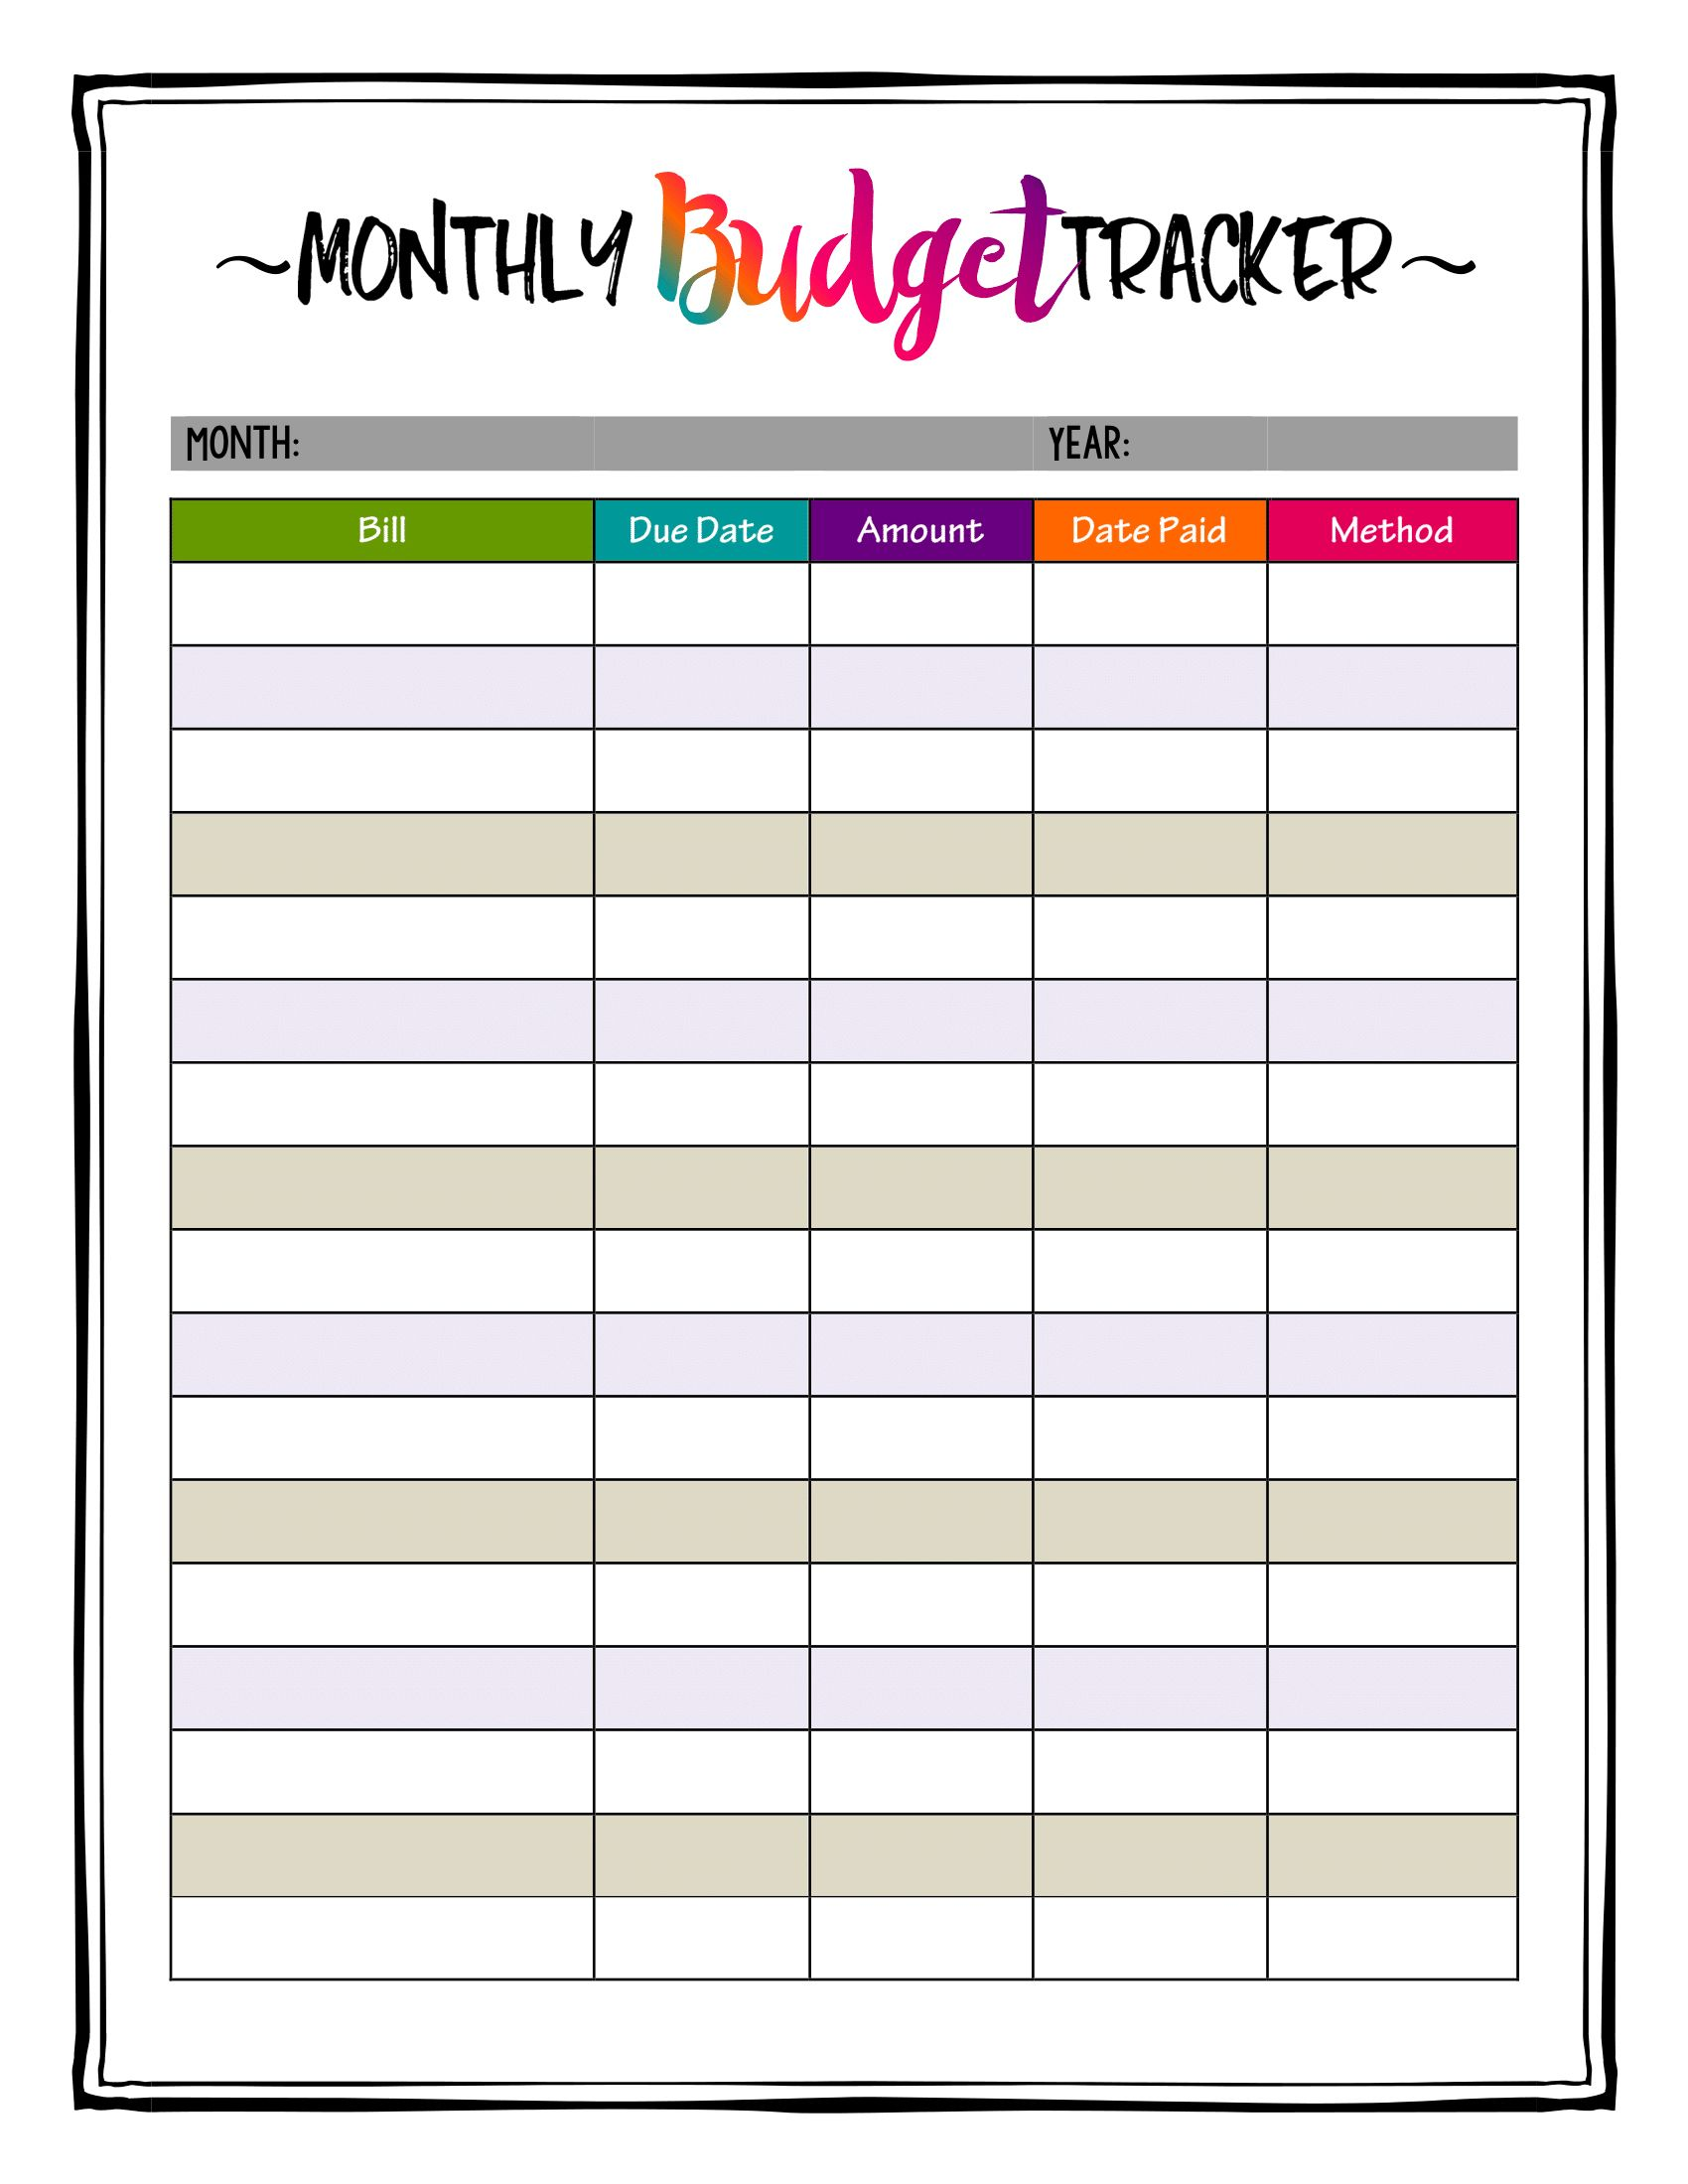 How To Organize Bills Super Bright Budget Tracker Makes Keeping A Budget Super Easy And Fun